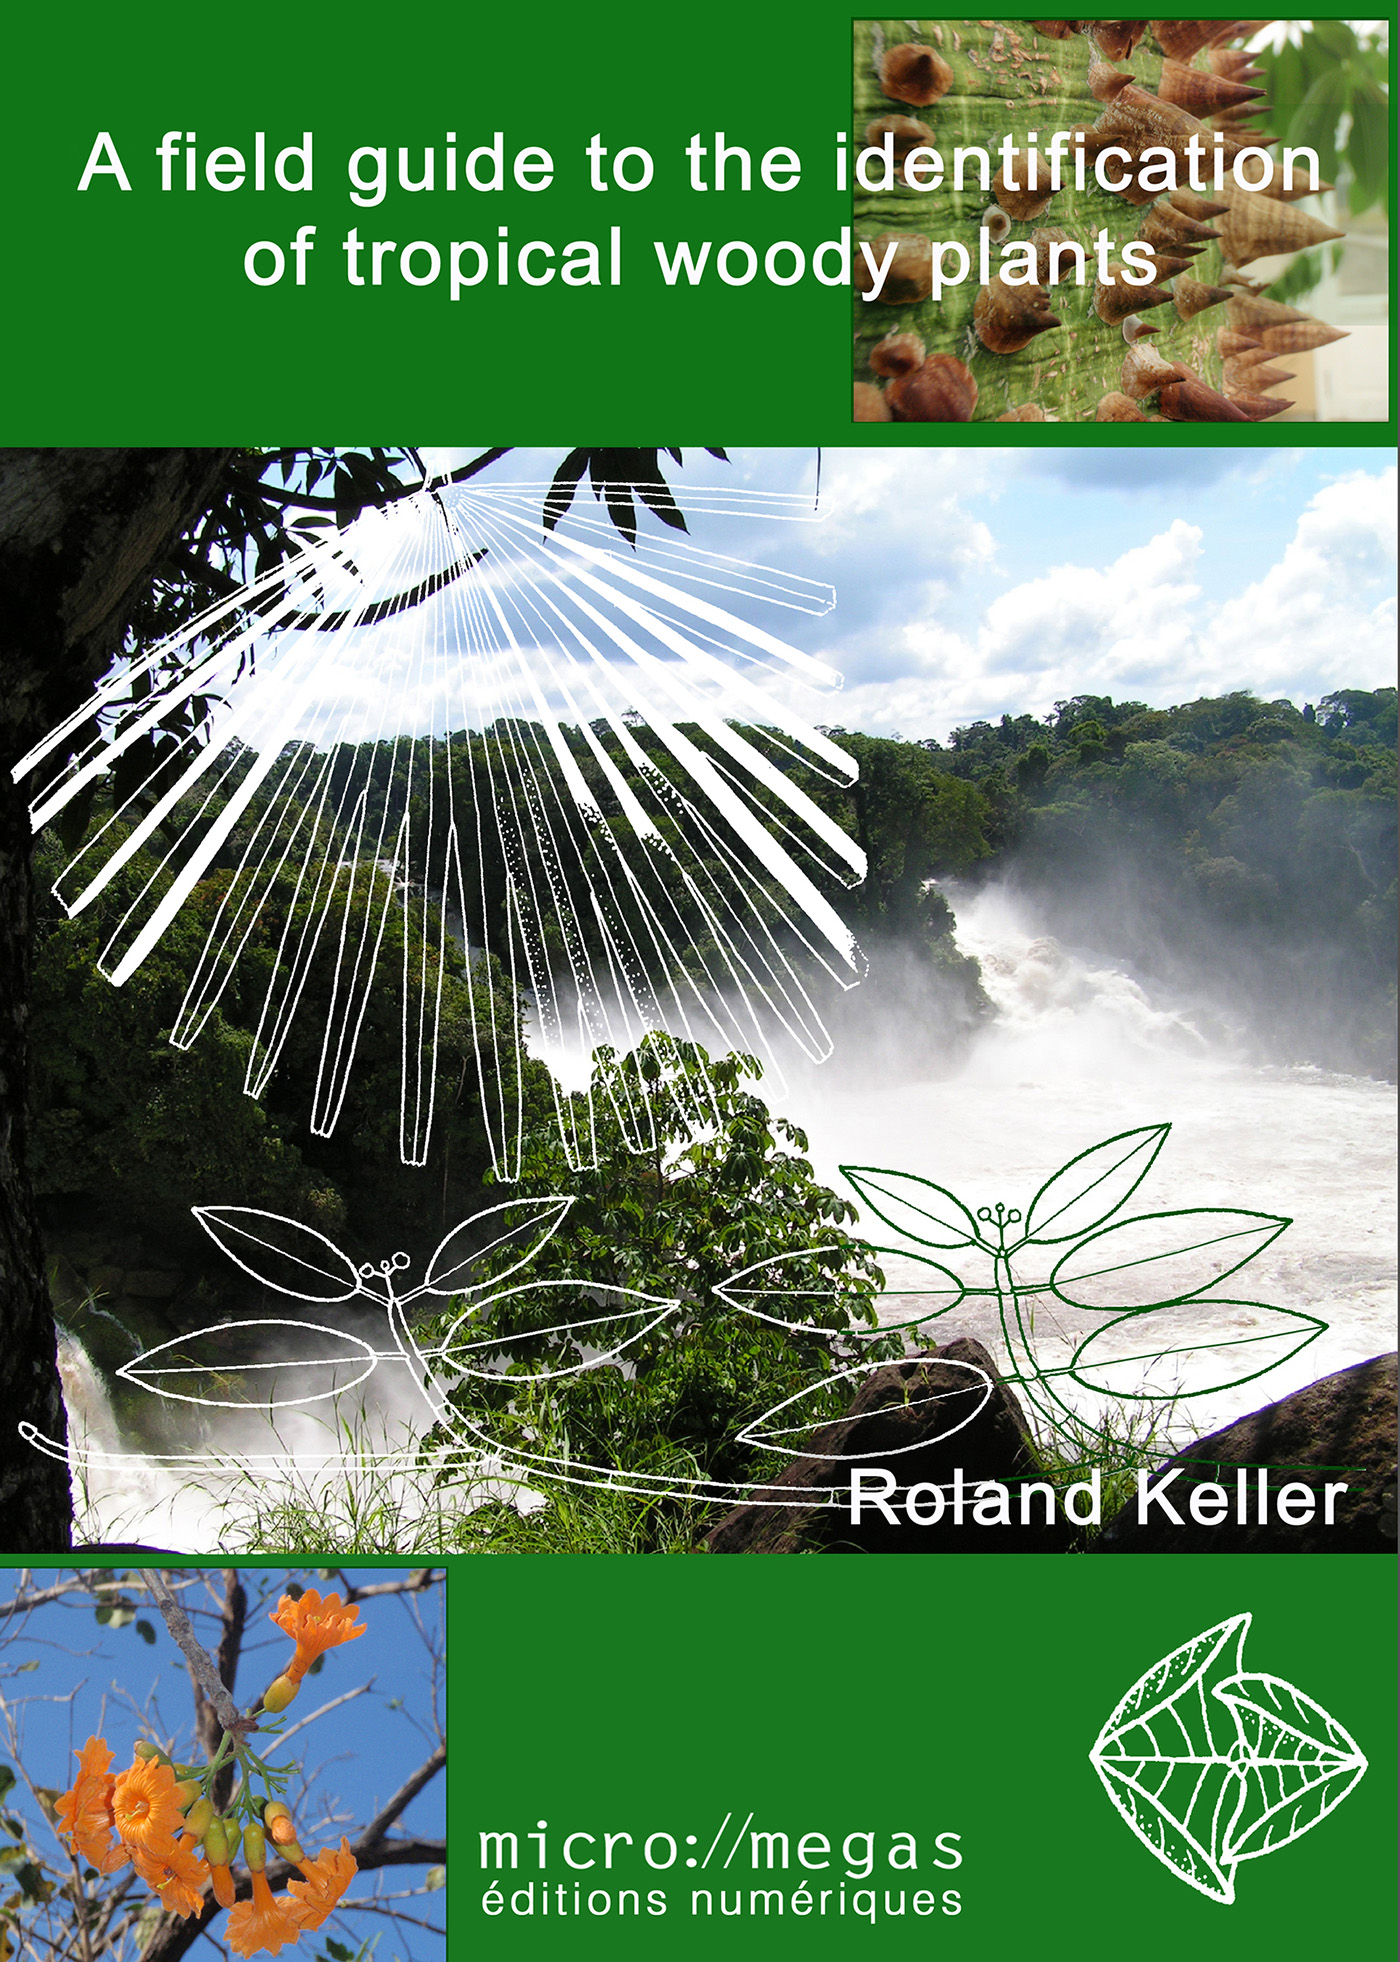 A Field Guide to the Identification of Tropical Woody Plants